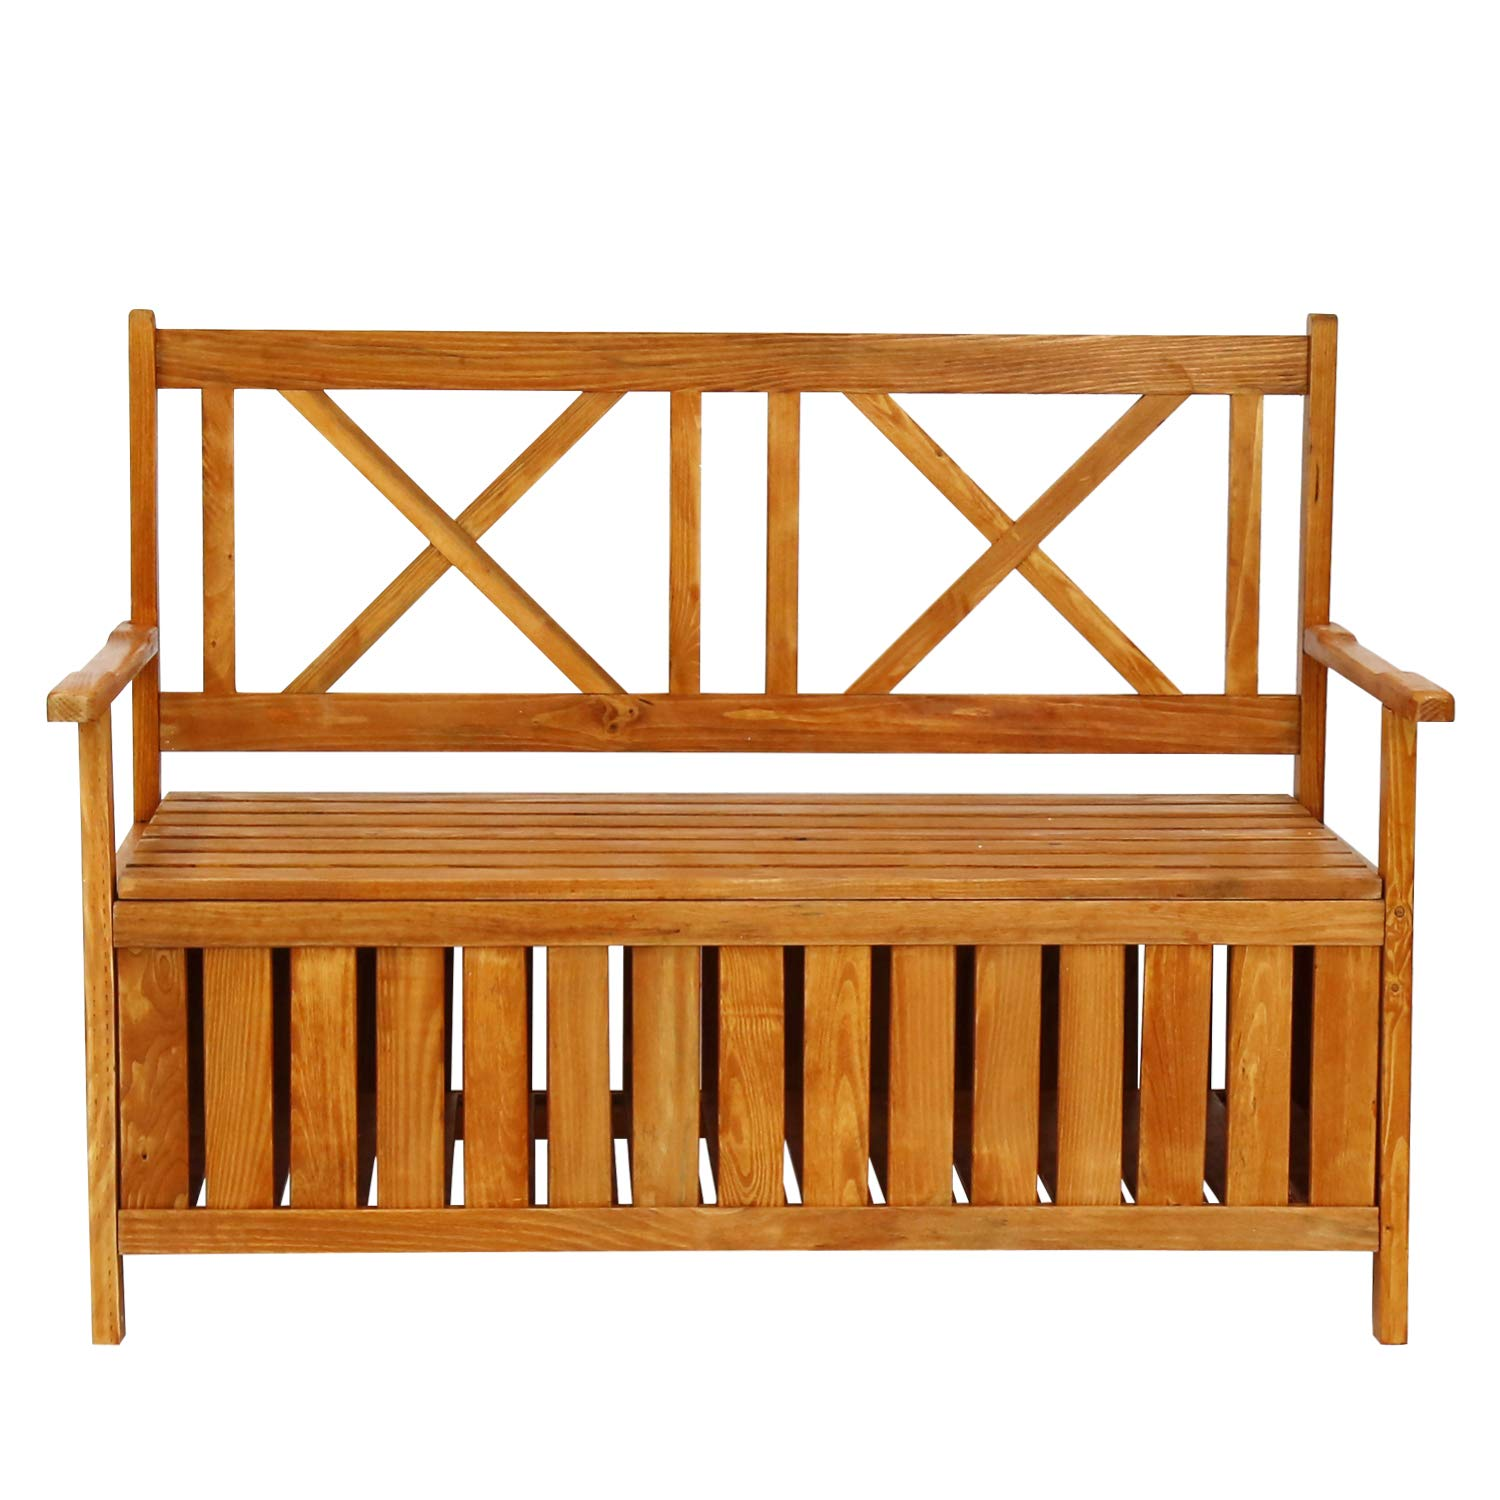 Large Storage Bench For Outdoor And Indoor Space Care 4 Home Llc Outdoor Storage Wood Bench Armrest, Large Interior Space,  Durable Practical, Waterproof, Perfect For Garden, Balcony, Poolside, ...